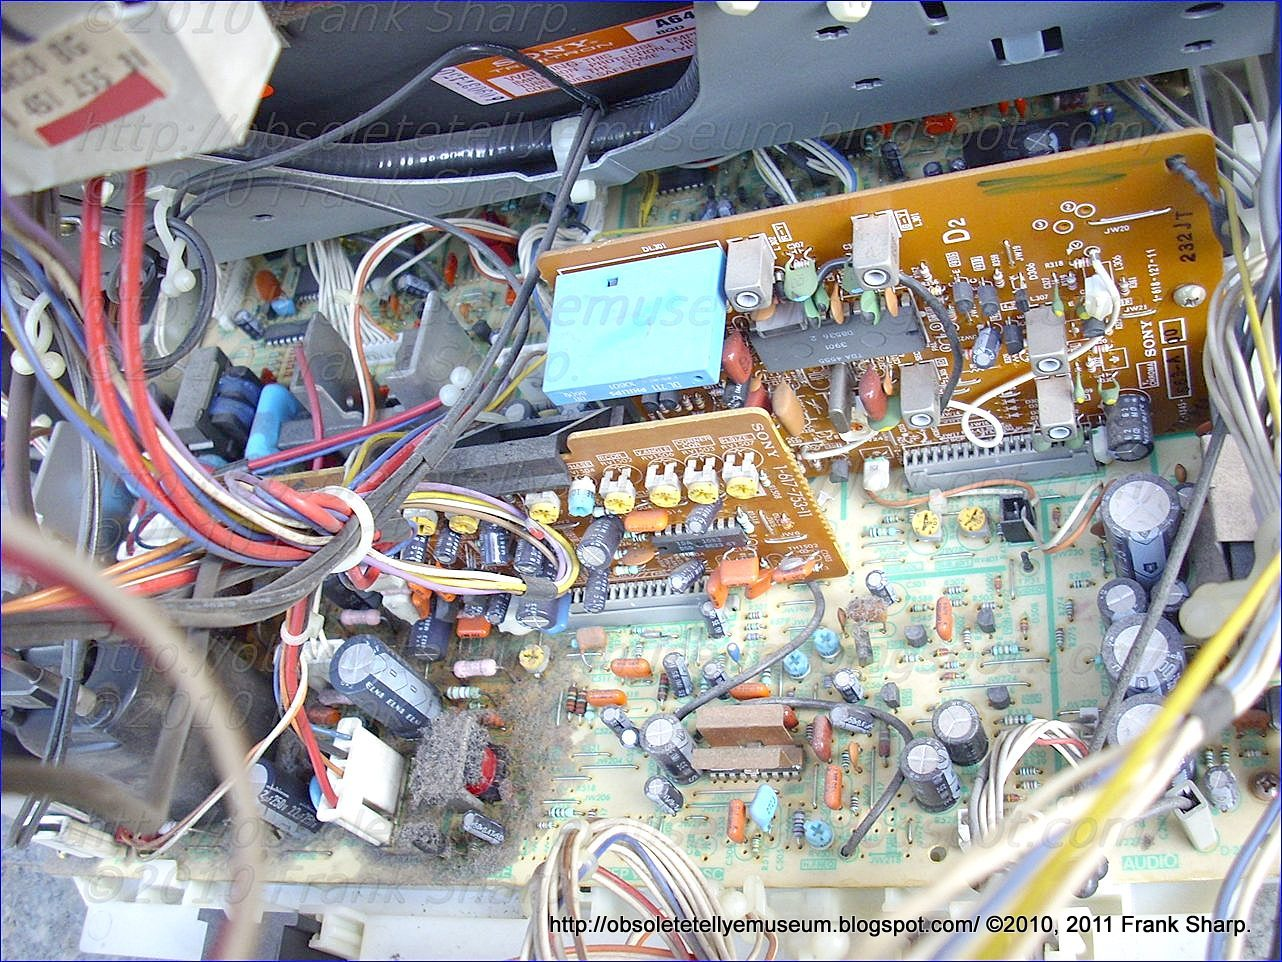 Obsolete Technology Tellye Sony Kv 27xr Ta Chassis Scc 783b A Sx 20v Regulated Power Supply Circuit Powersupplycircuit The Is Somewhat Brother With Different Design And Components Compared To Older Awesome Rx2 Of 1985